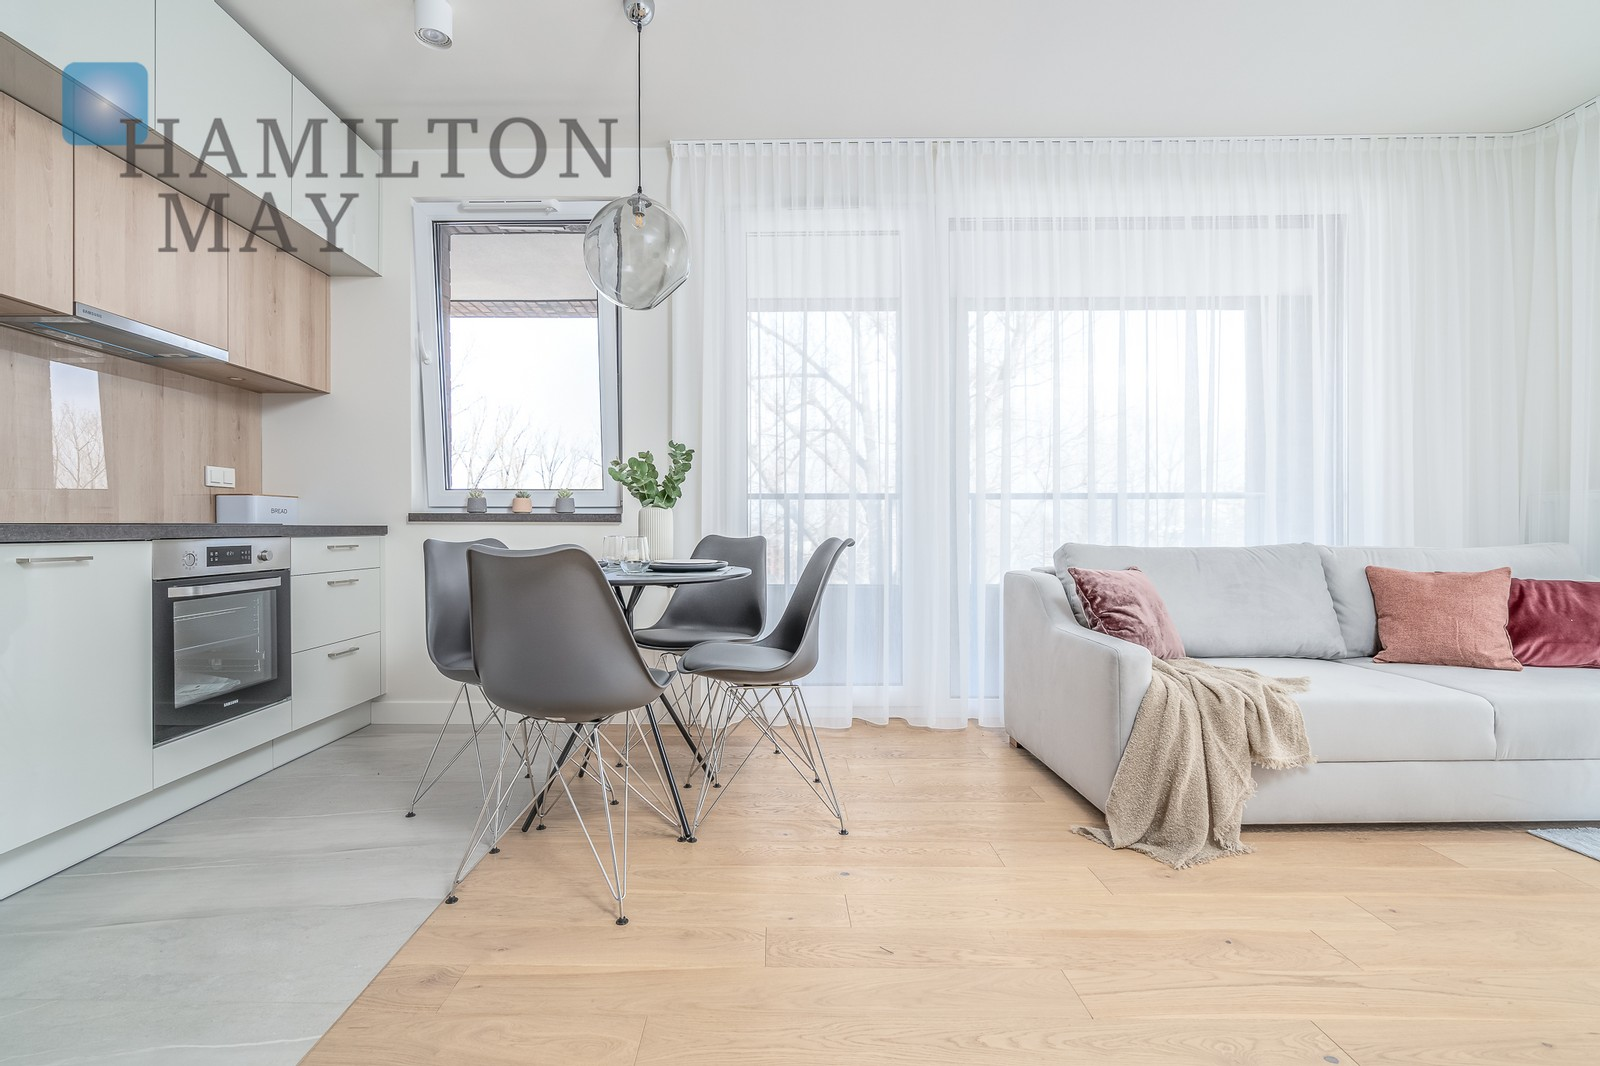 A corner stunning two-bedroom apartment on the top floor with a 28 m2 terrace in the new investment next to the Szwedzka metro station Warsaw for rent